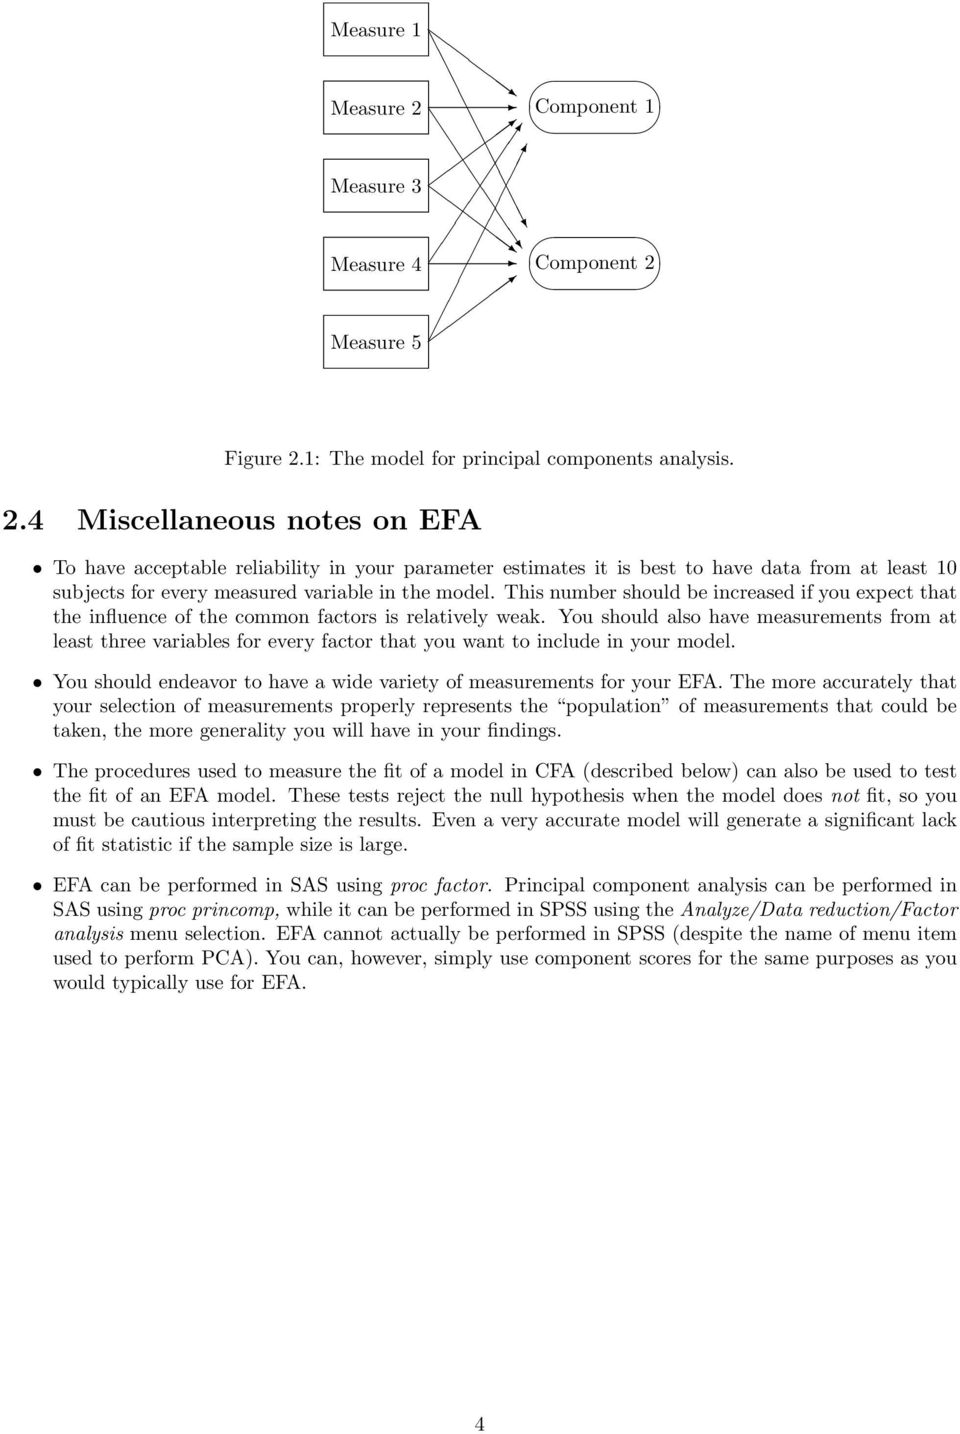 Measure 5 Figure 2.1: The model for principal components analysis. 2.4 Miscellaneous notes on EFA To have acceptable reliability in your parameter estimates it is best to have data from at least 10 subjects for every measured variable in the model.